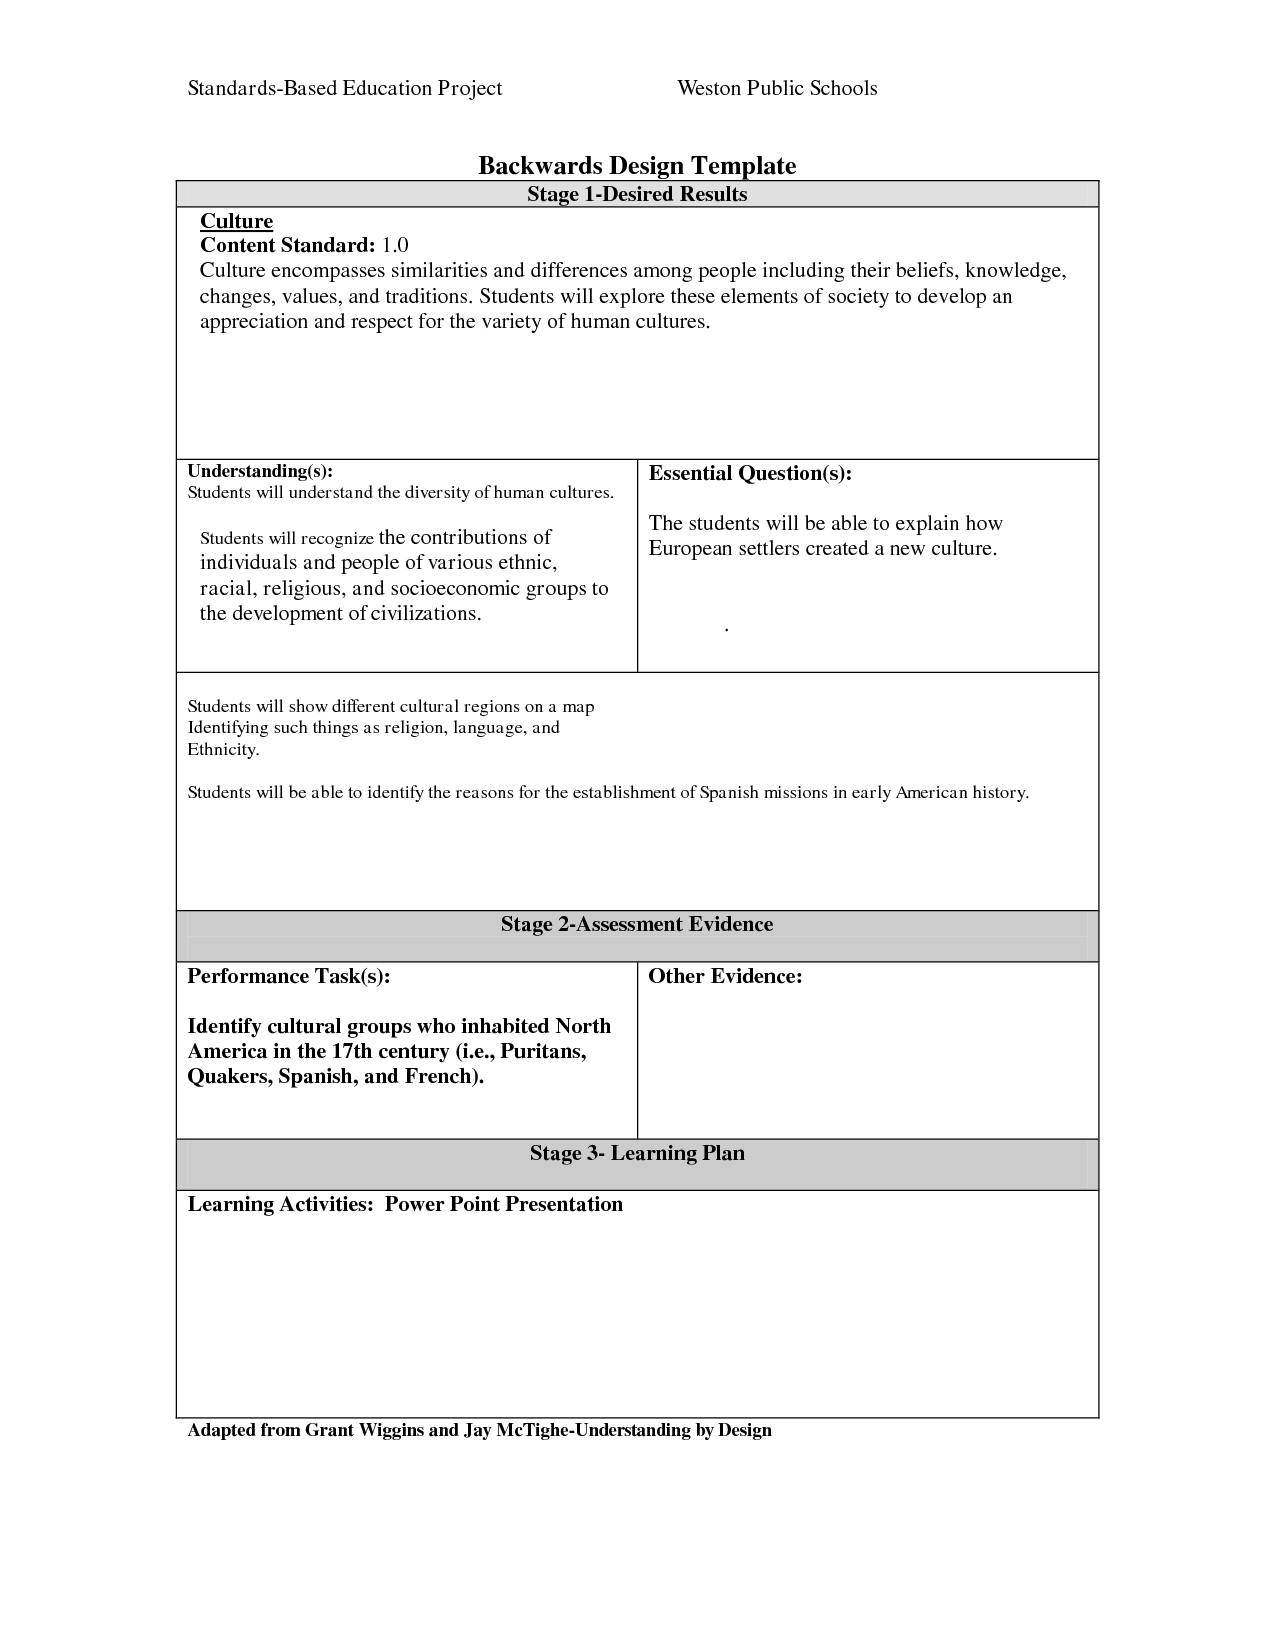 Backward design lesson template curriculum for music - Understanding by design lesson plan template ...